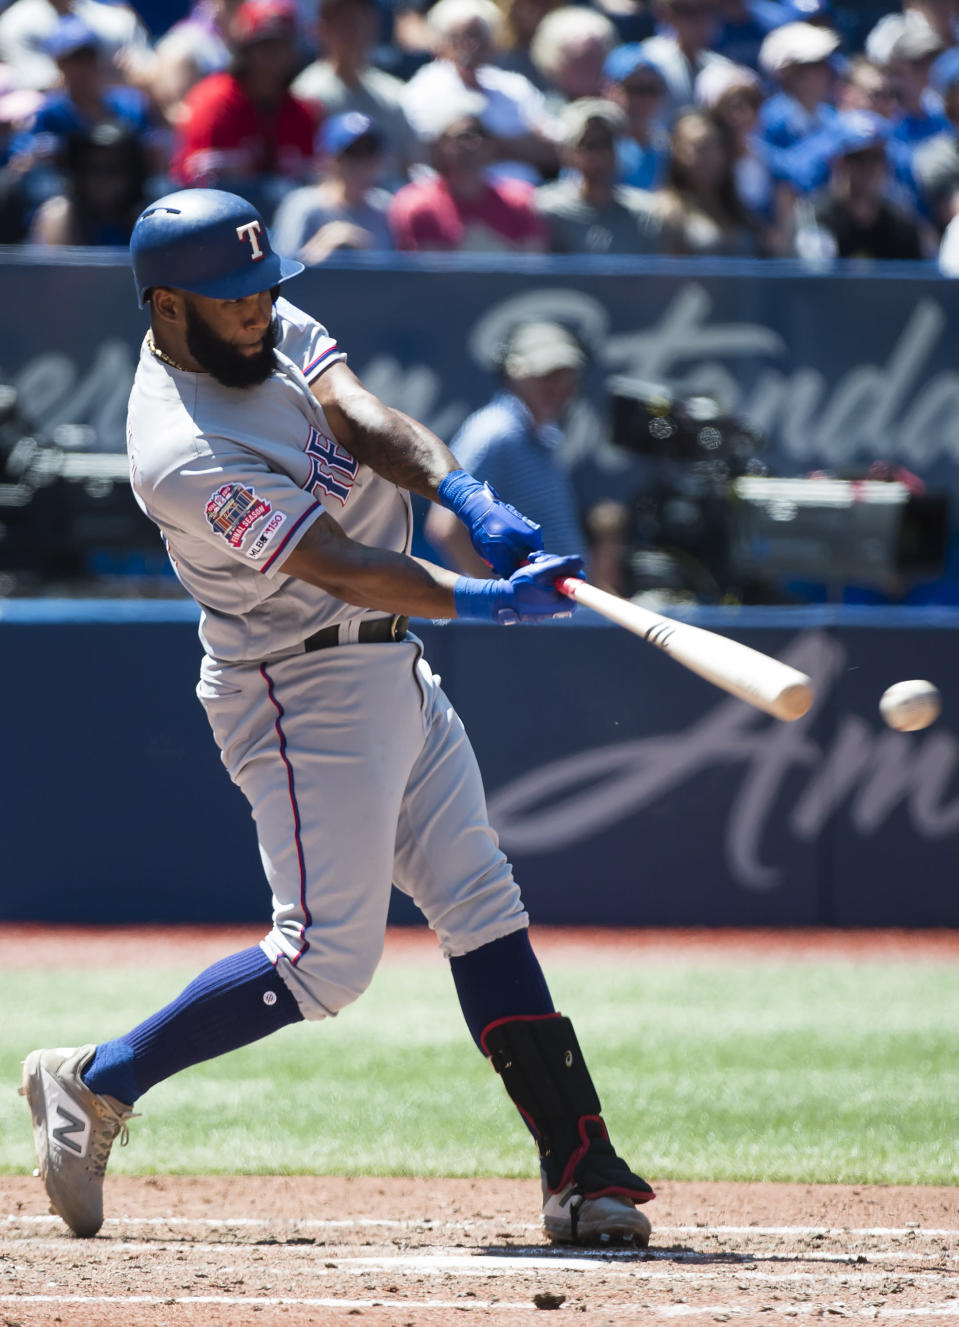 Texas Rangers' Danny Santana hits a two-run double against the Toronto Blue Jays during the fourth inning of a baseball game in Toronto, Wednesday, Aug. 14, 2019. (Nathan Denette/The Canadian Press via AP)